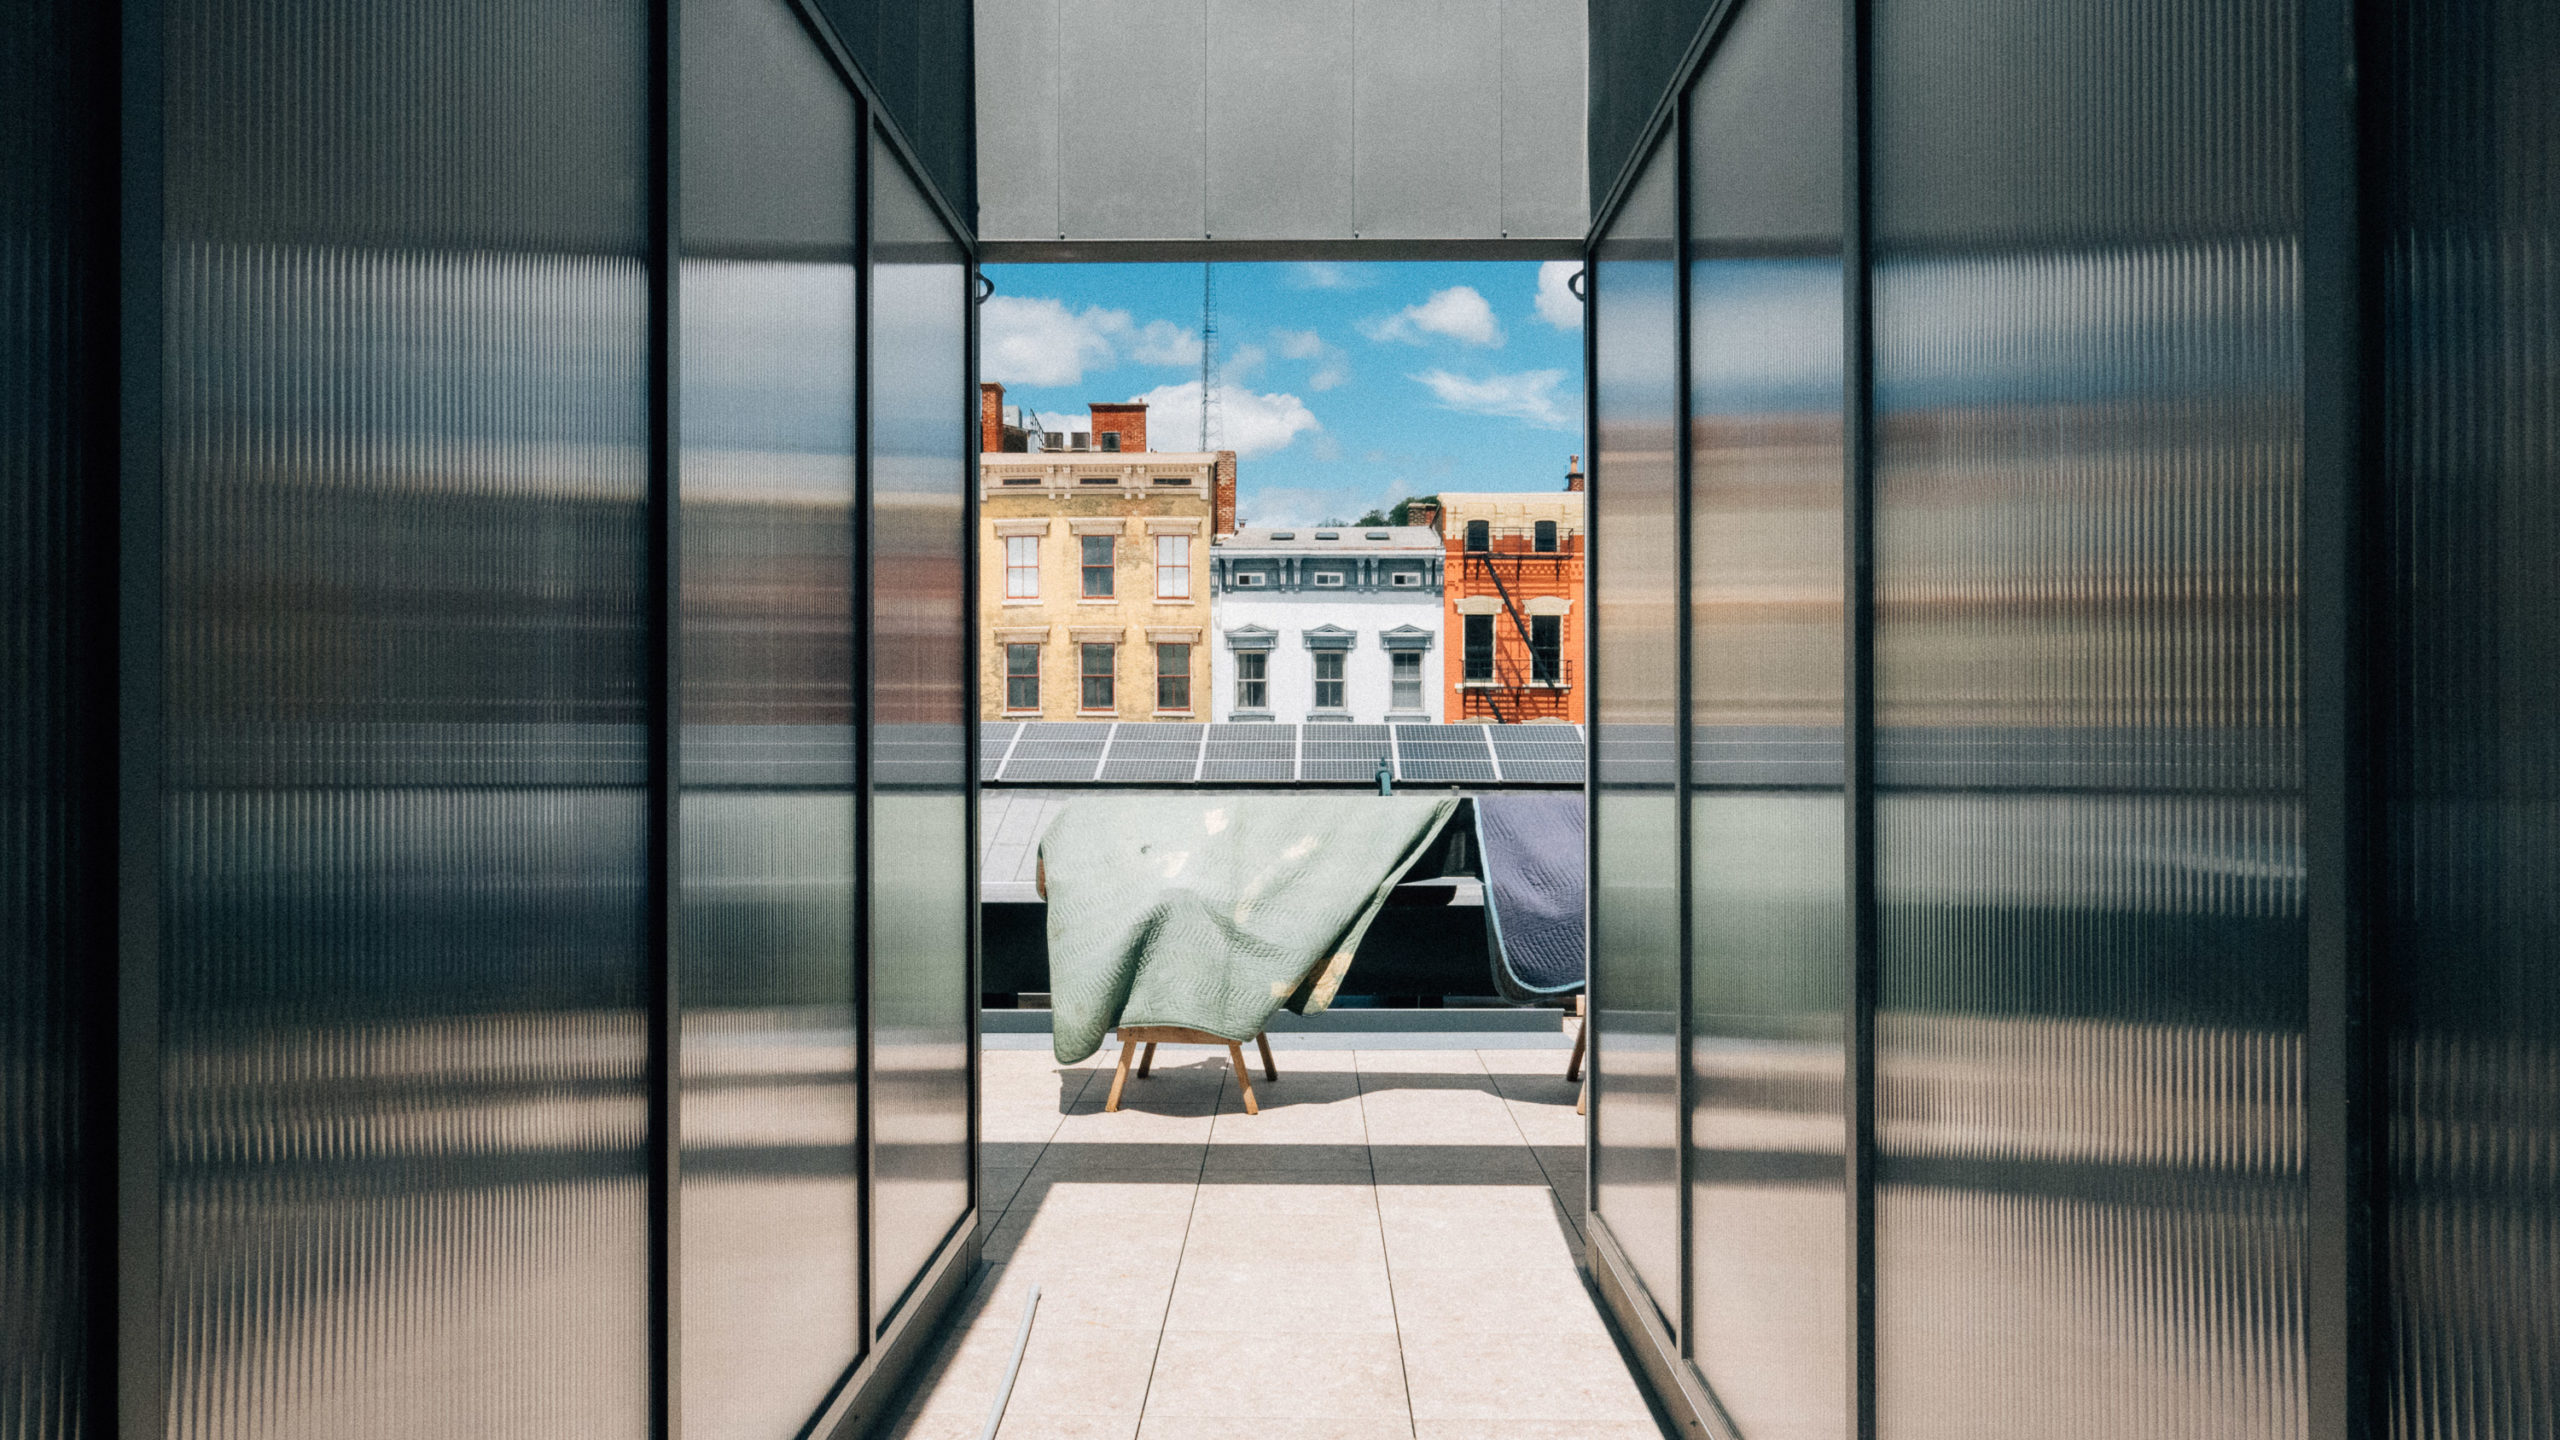 An exterior hallway of reflective surface leading to a city view